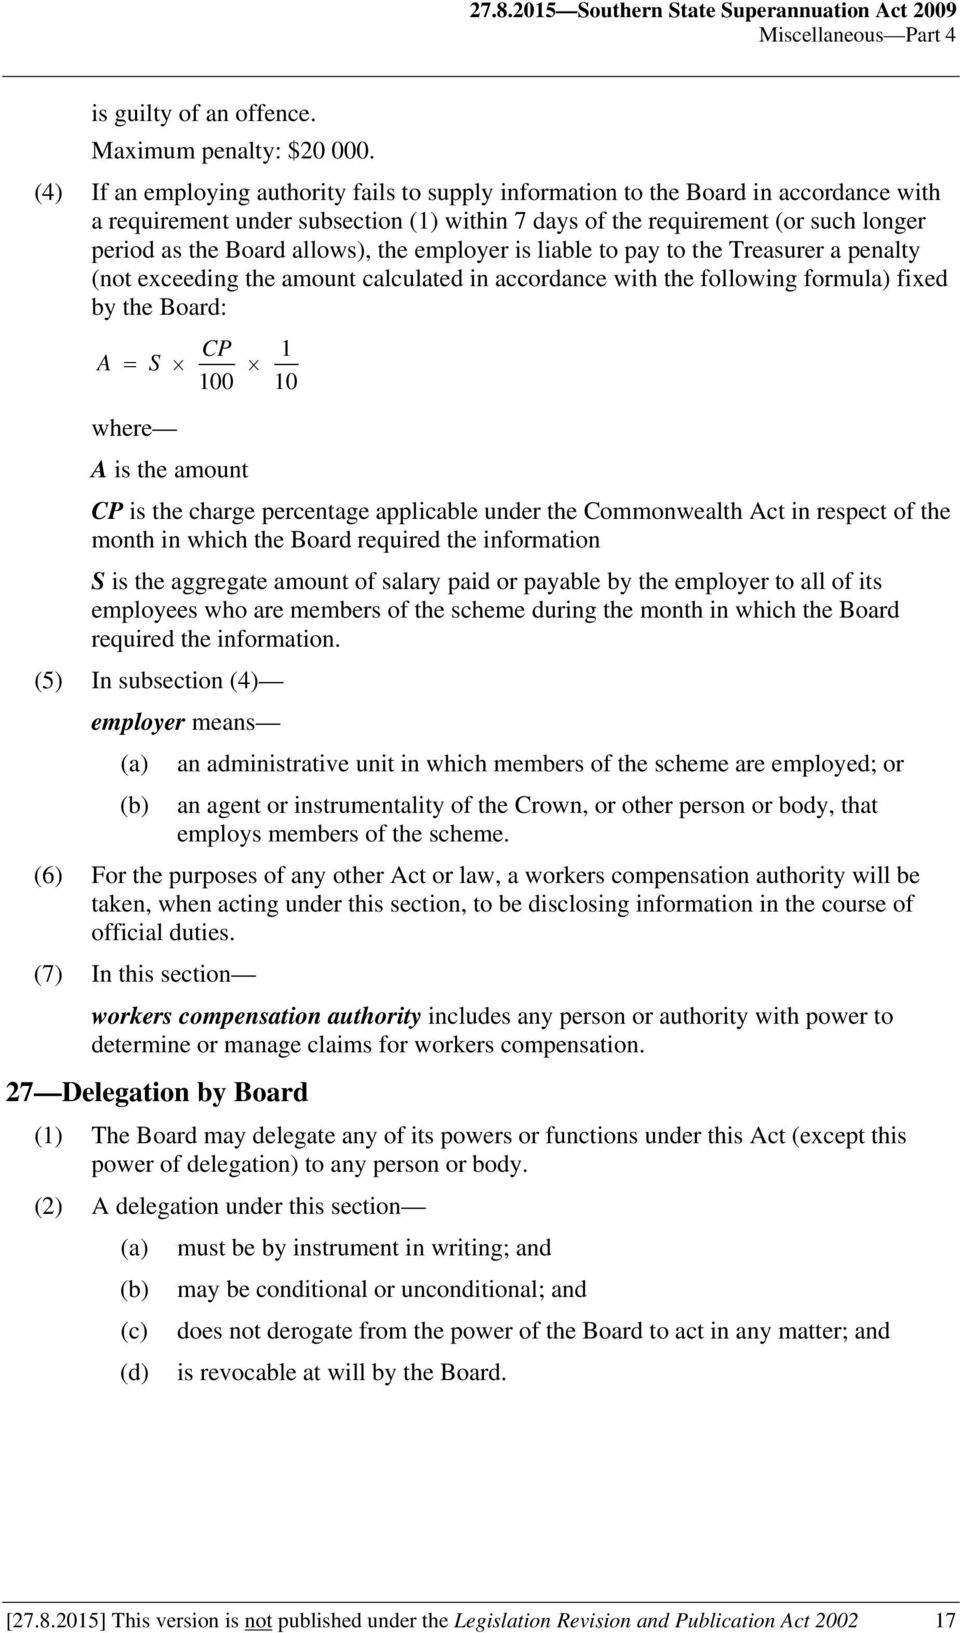 allows), the employer is liable to pay to the Treasurer a penalty (not exceeding the amount calculated in accordance with the following formula) fixed by the Board: CP 1 A = S 100 10 where A is the